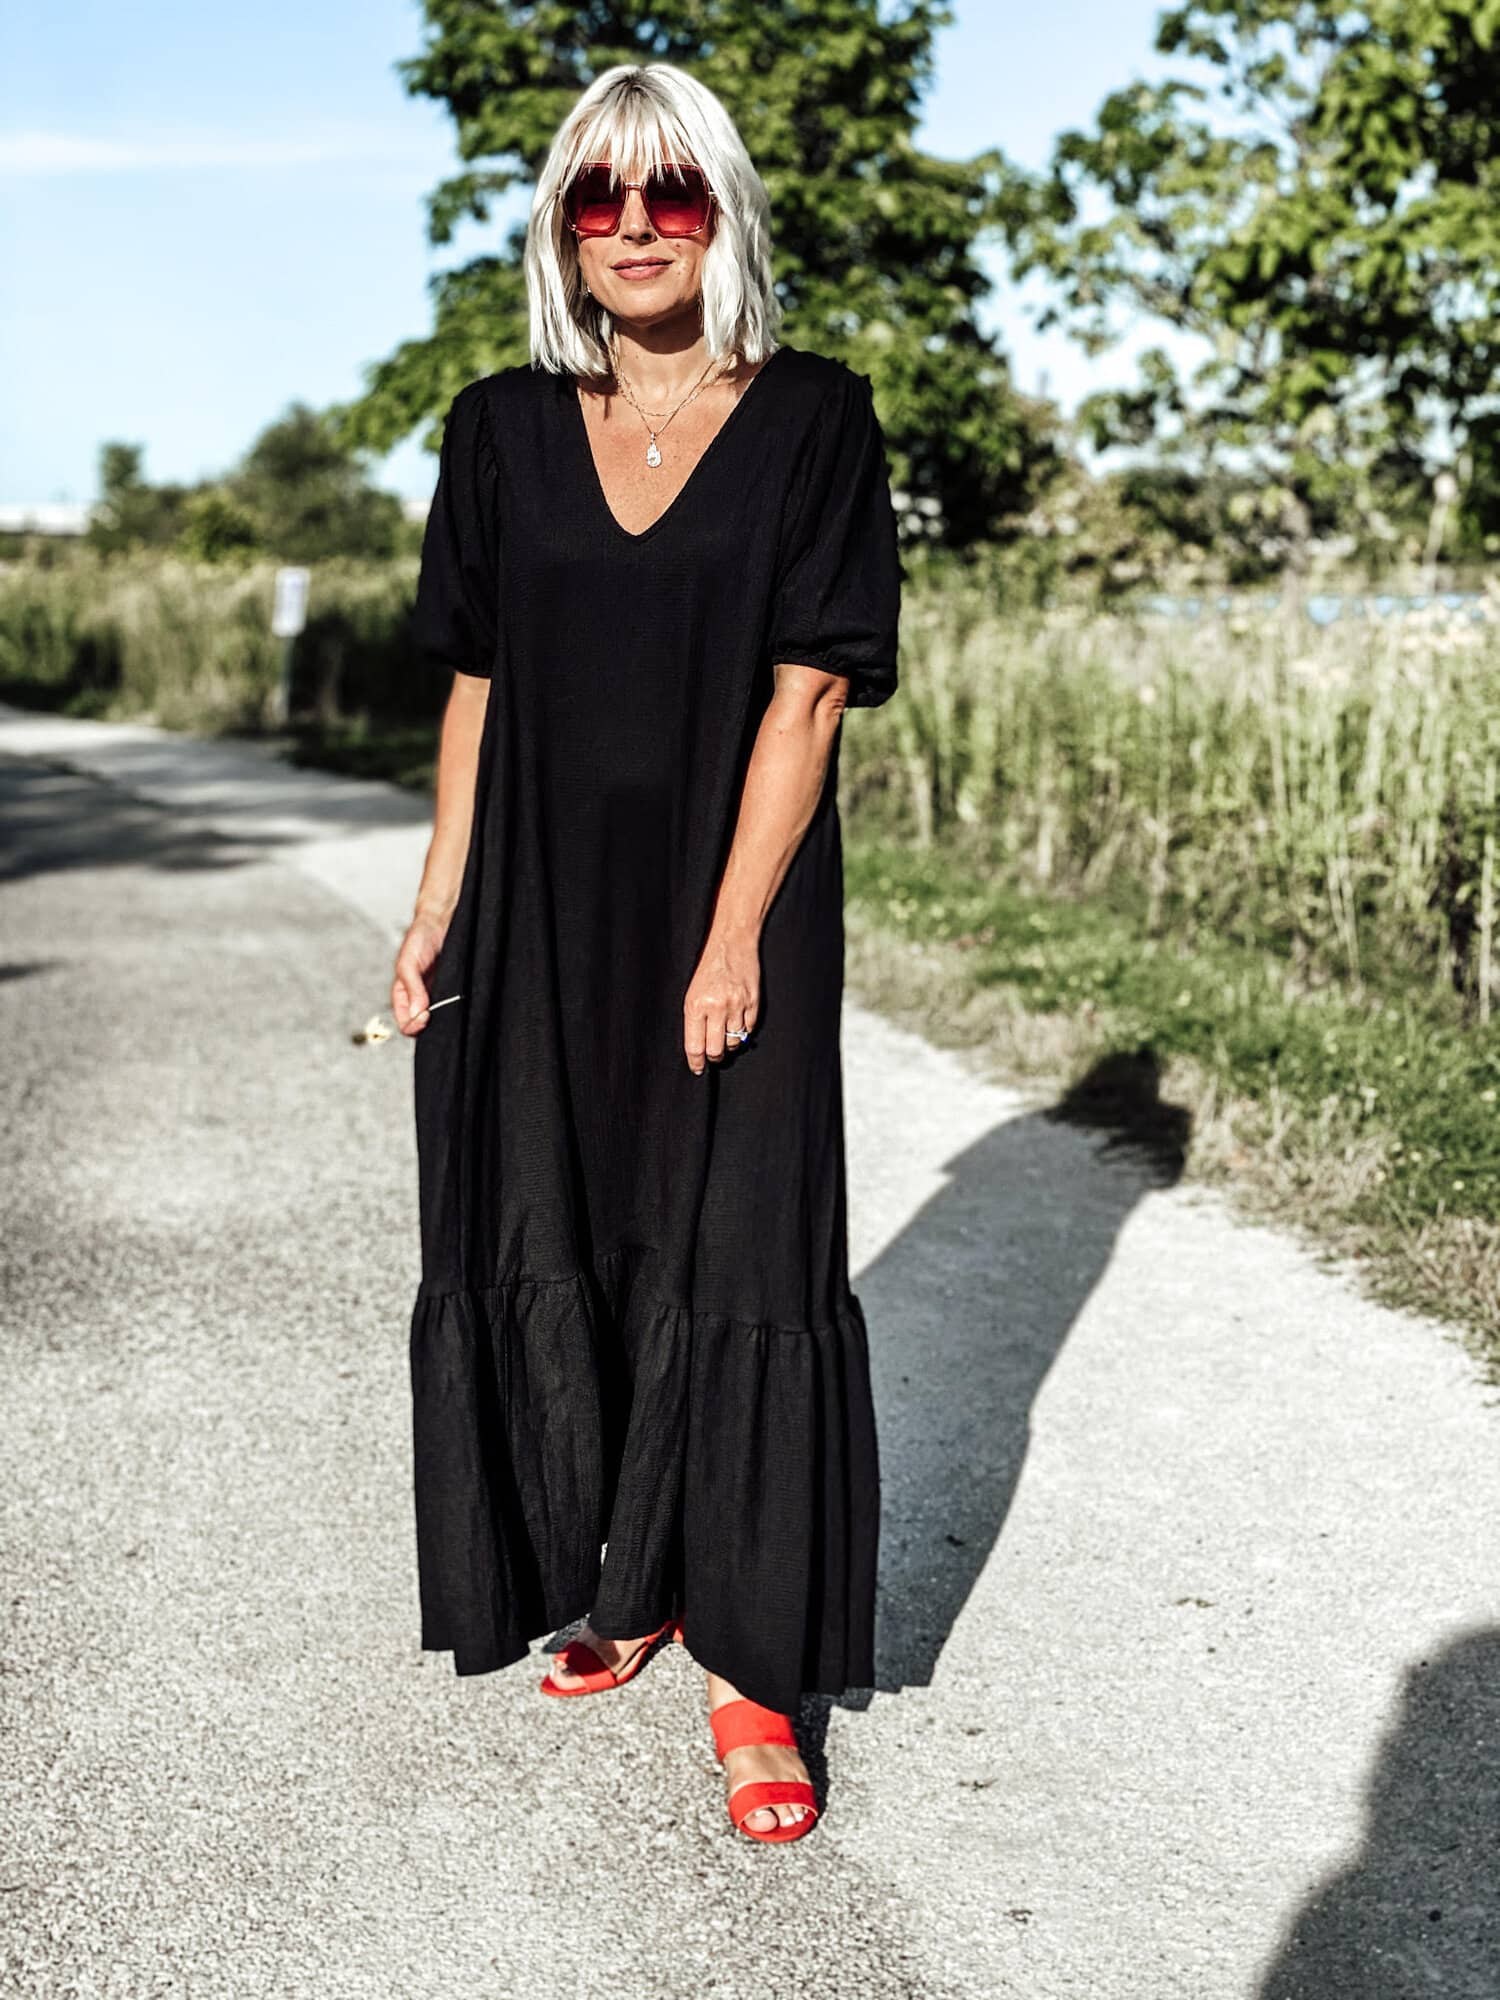 Johanna Grange became the Top of the World Style winner in her black maxi dress with red mules